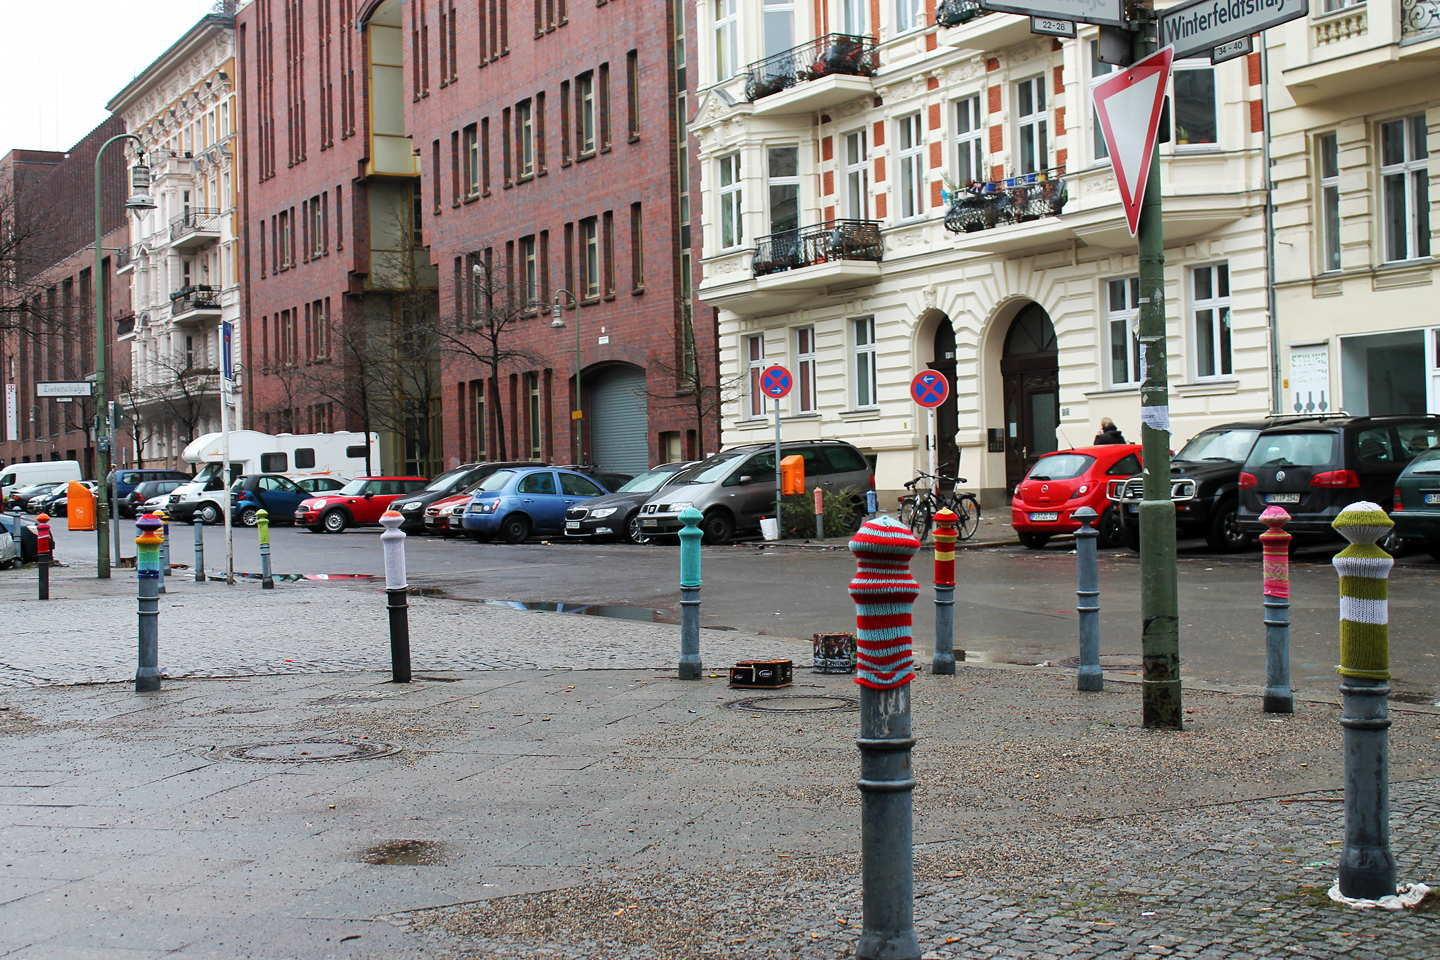 Guerillia Knitting (Yarn Bombing) Street Art in Berlin Schoeneberg